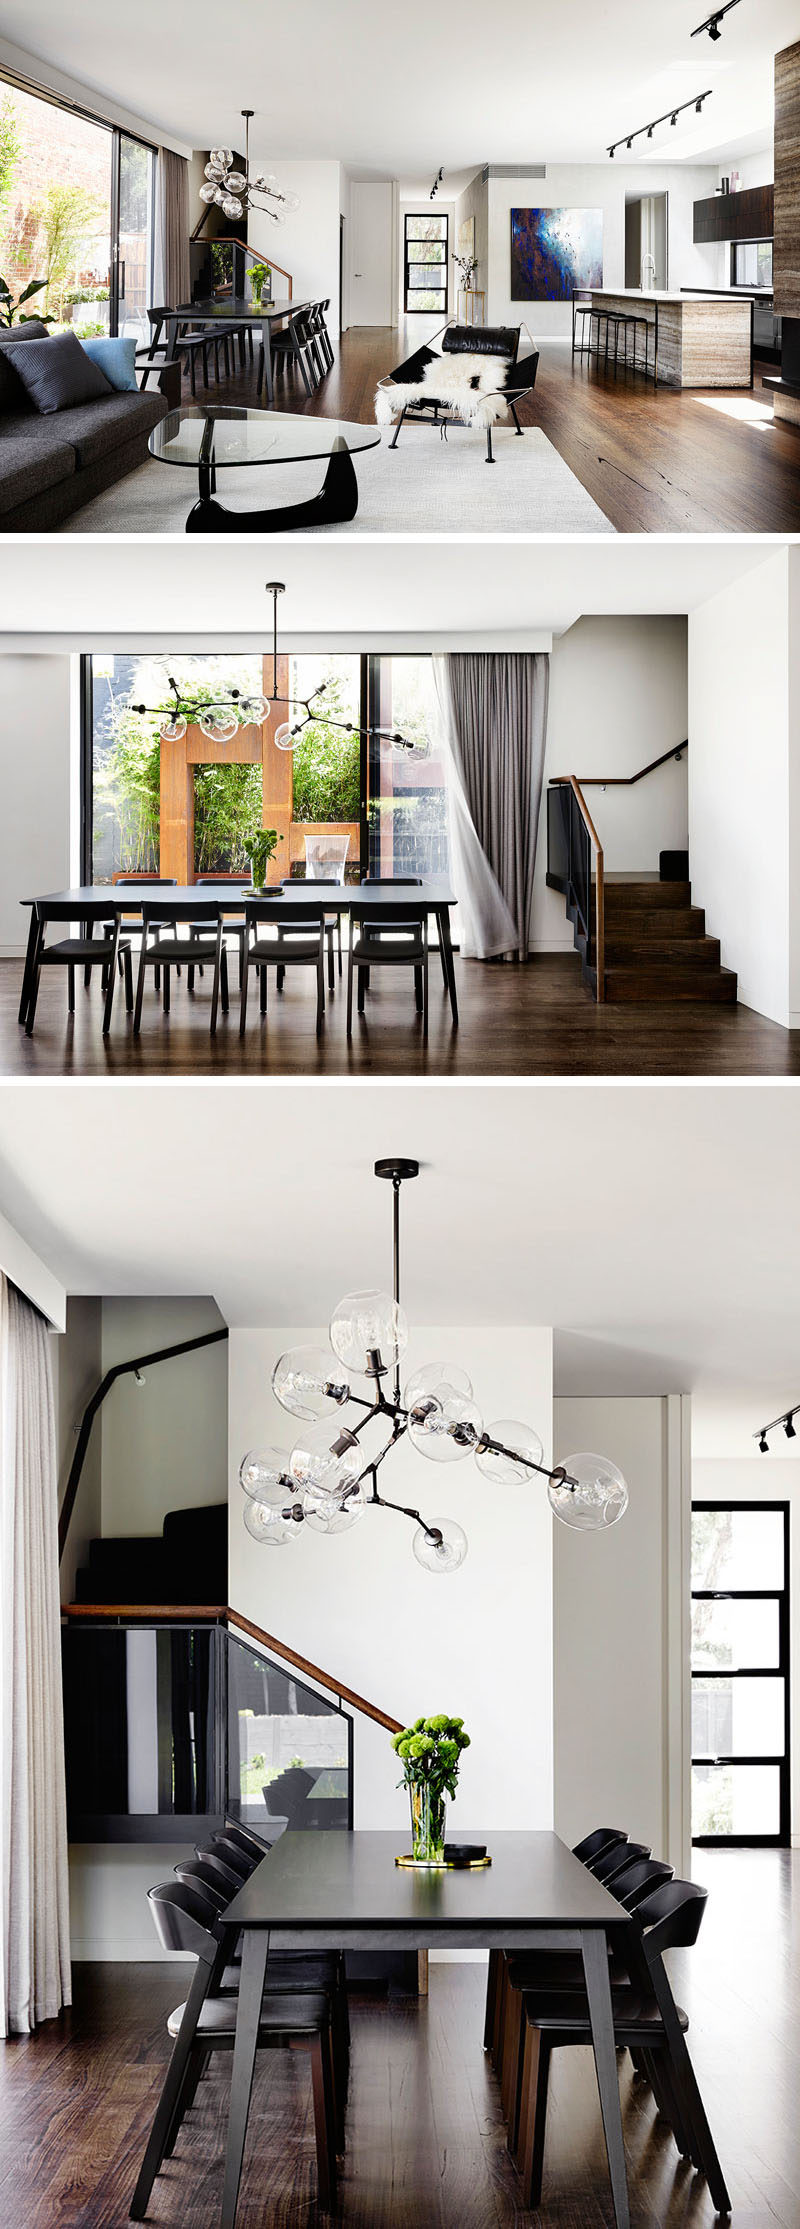 This modern open plan interior anchors the dining table in the space by using a chandelier.